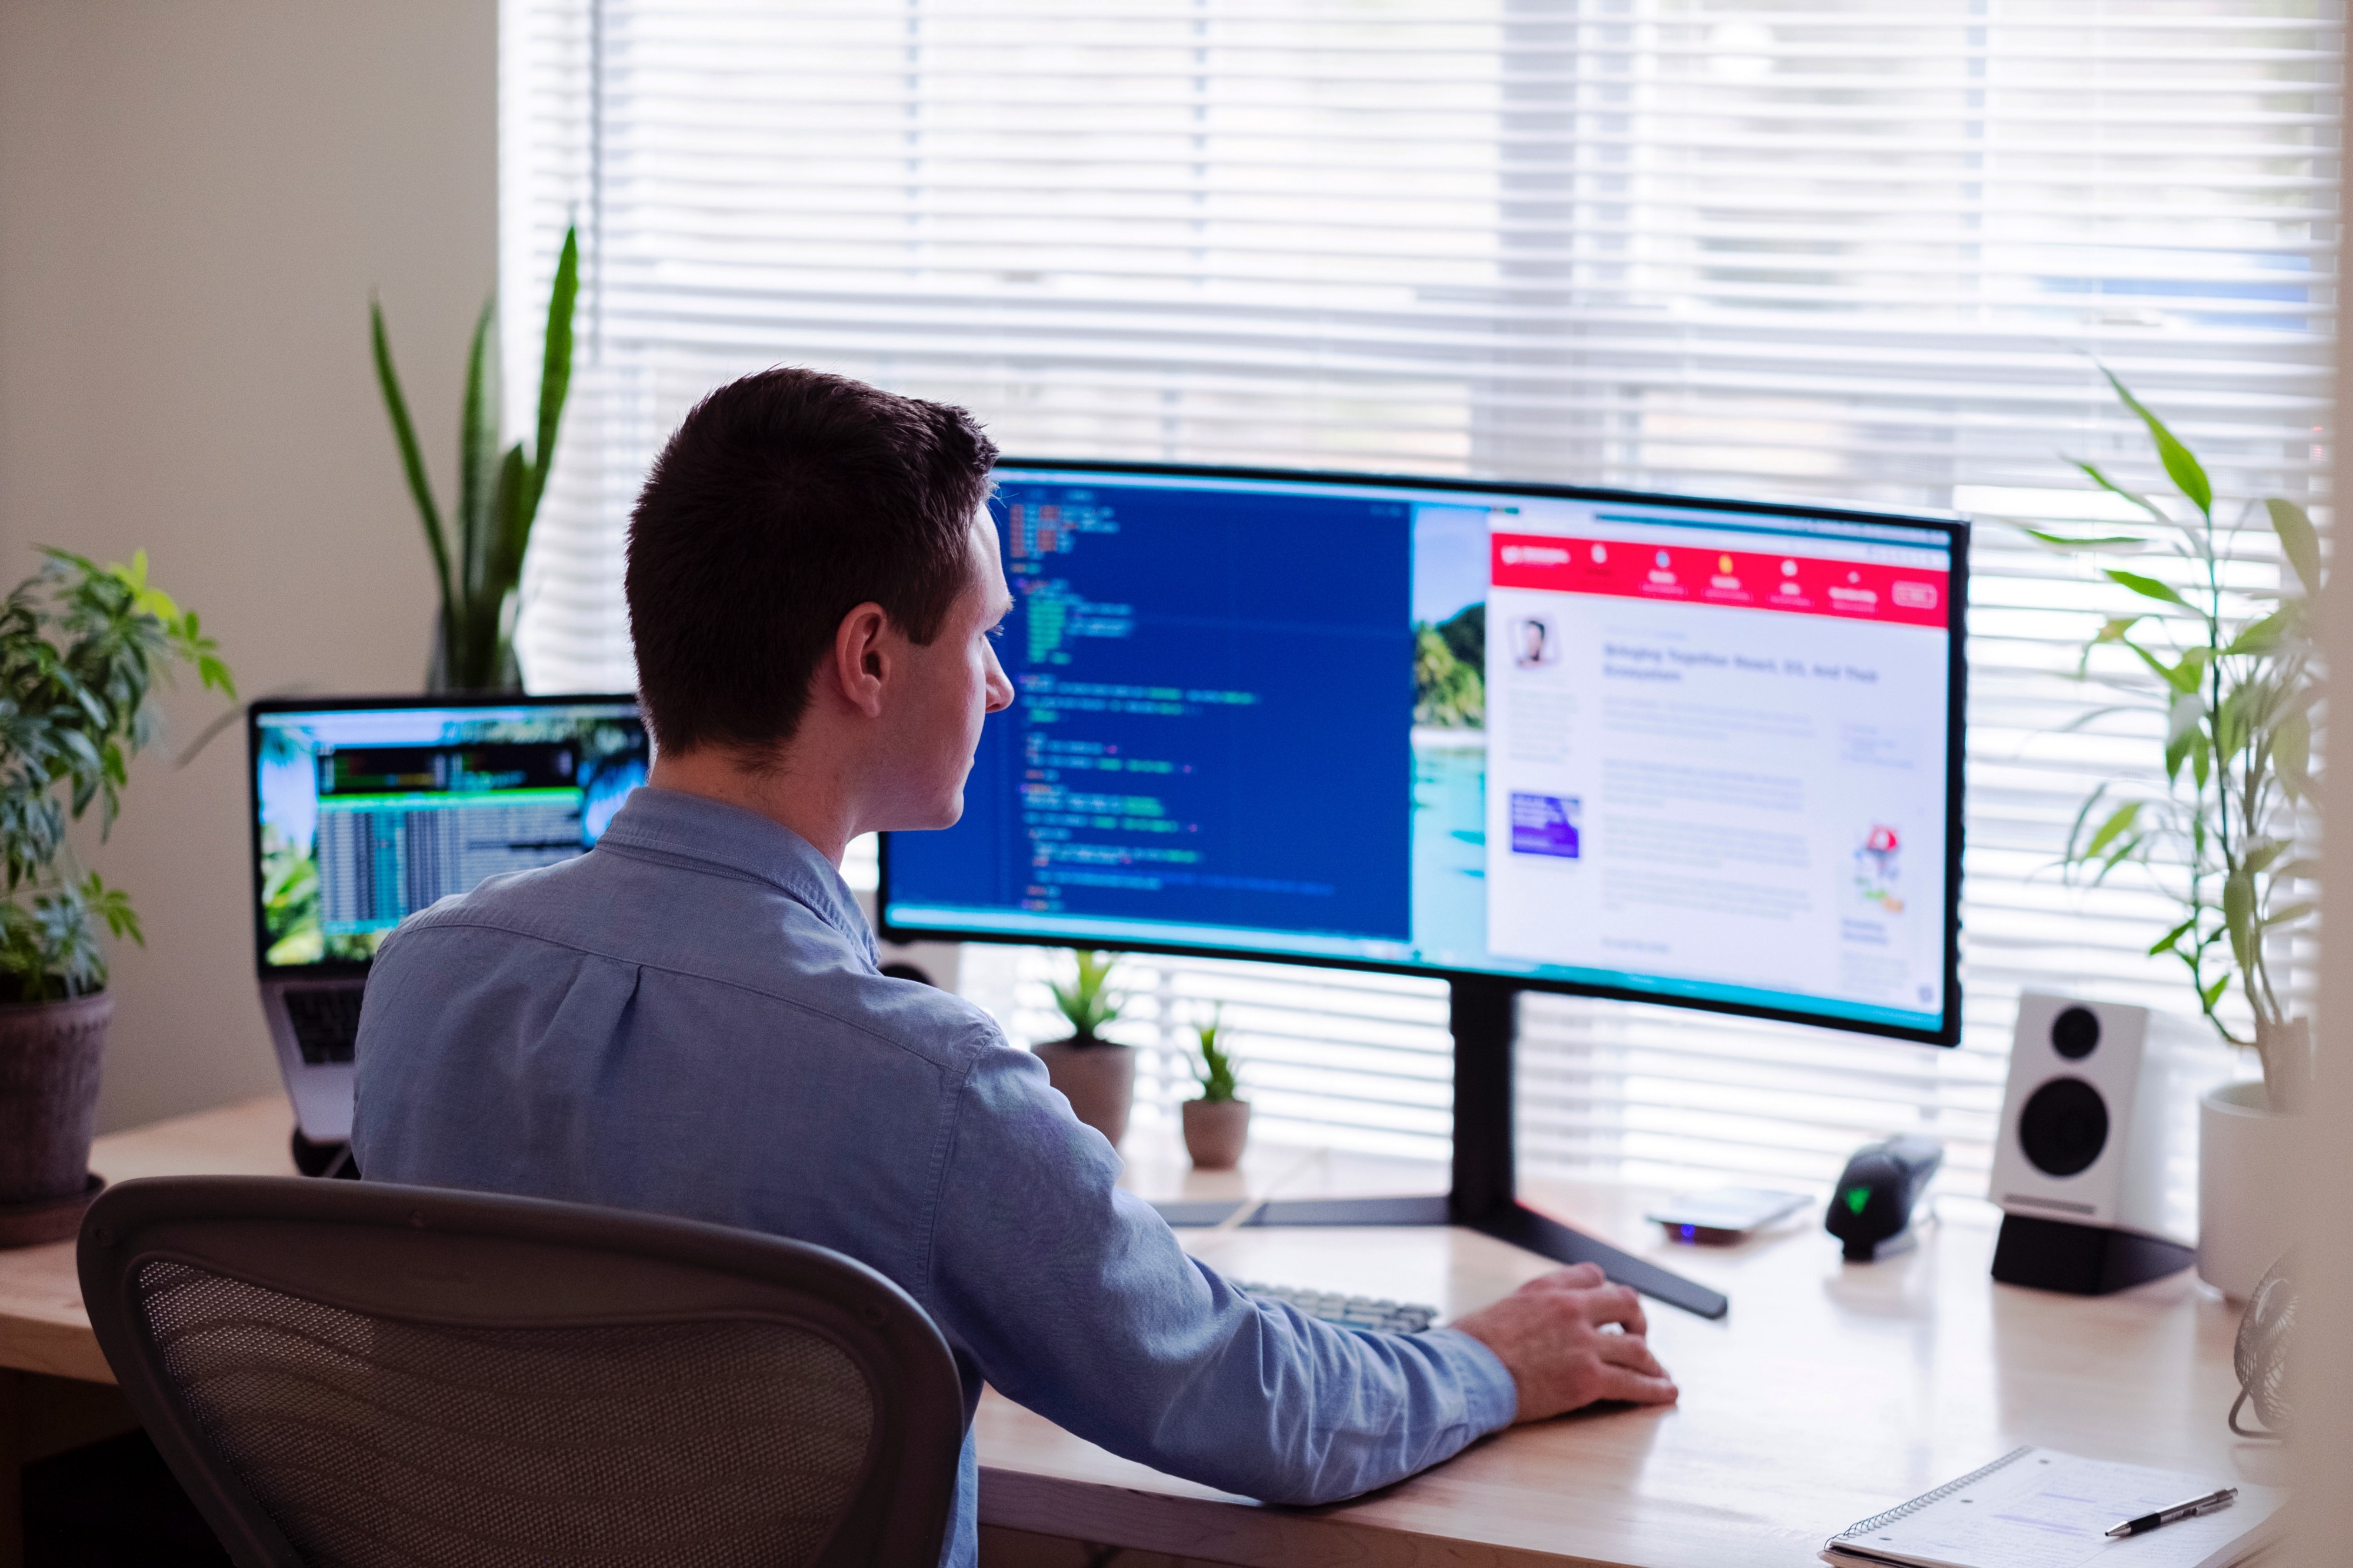 A professionally dressed man works at home with double computer screen and laptop on his desk with plants facing window